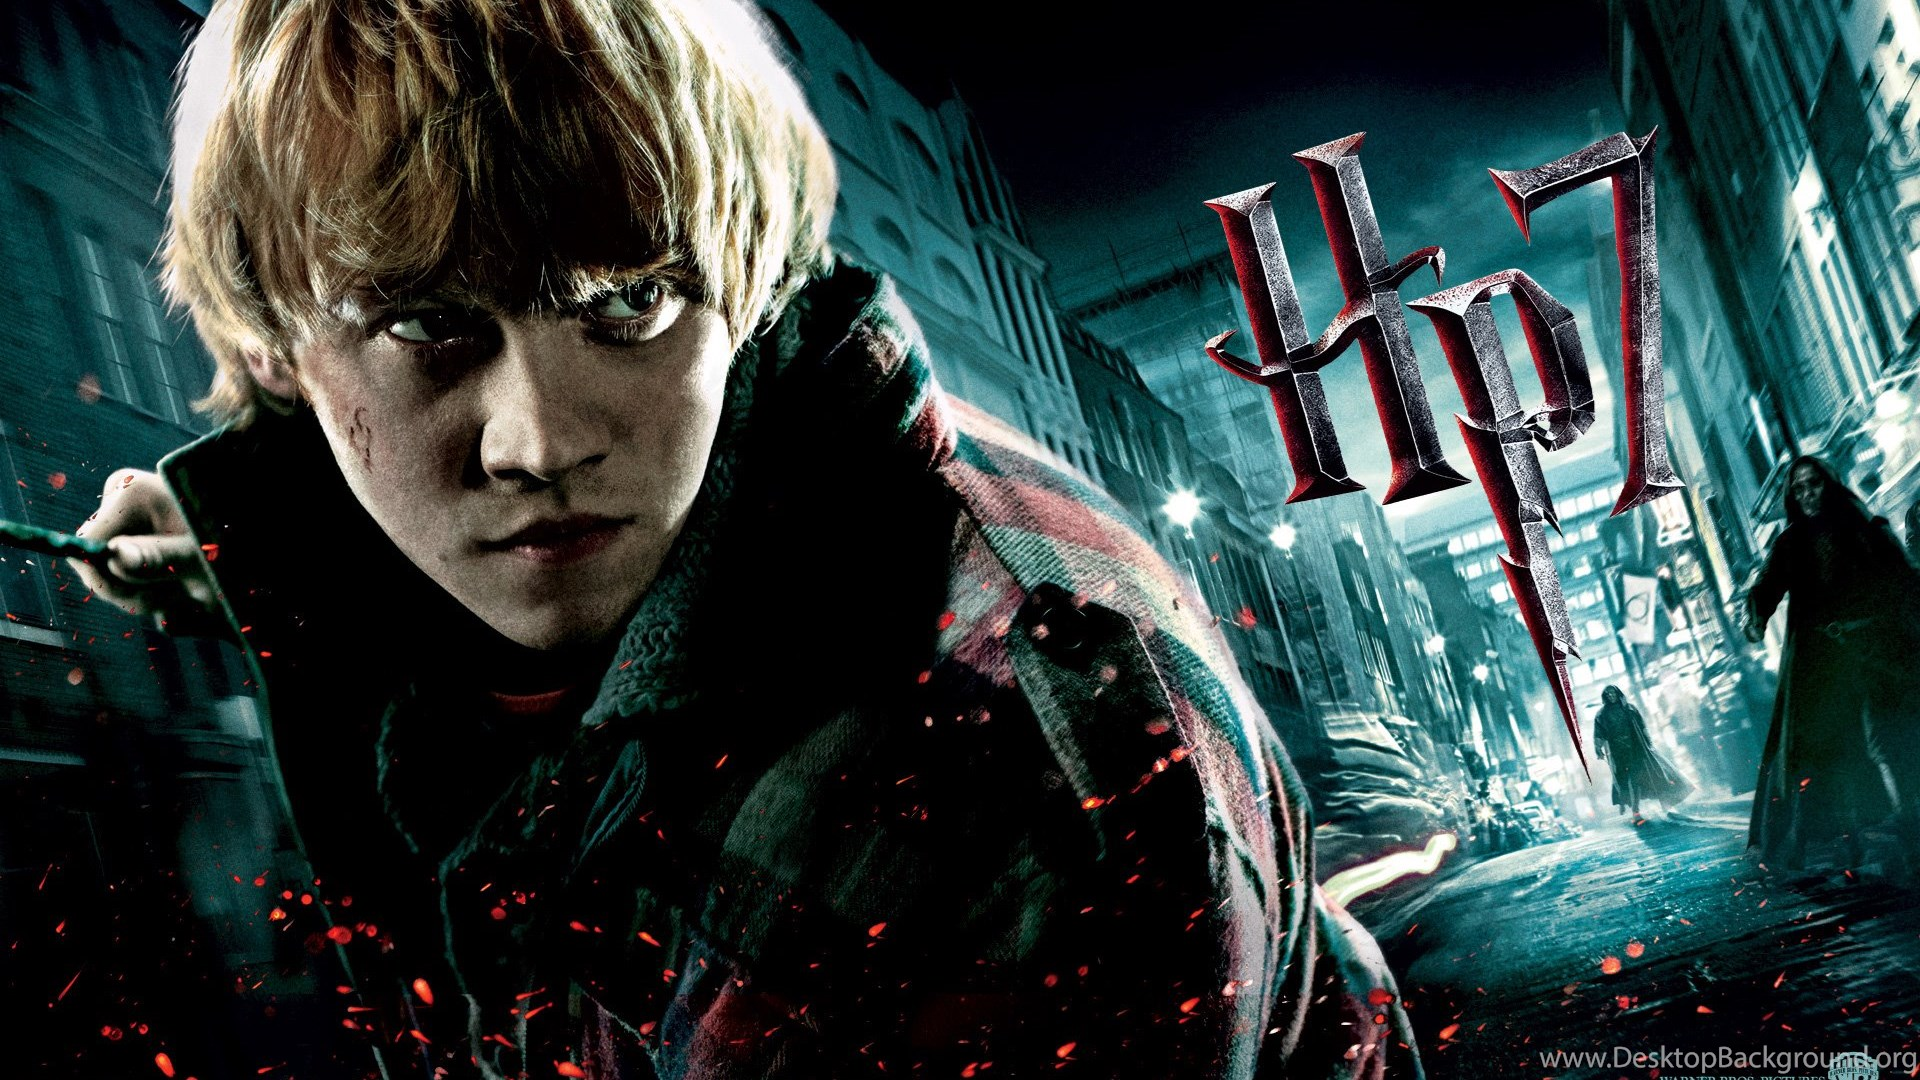 Rupert Grint In Harry Potter And The Deathly Hallows Wallpapers